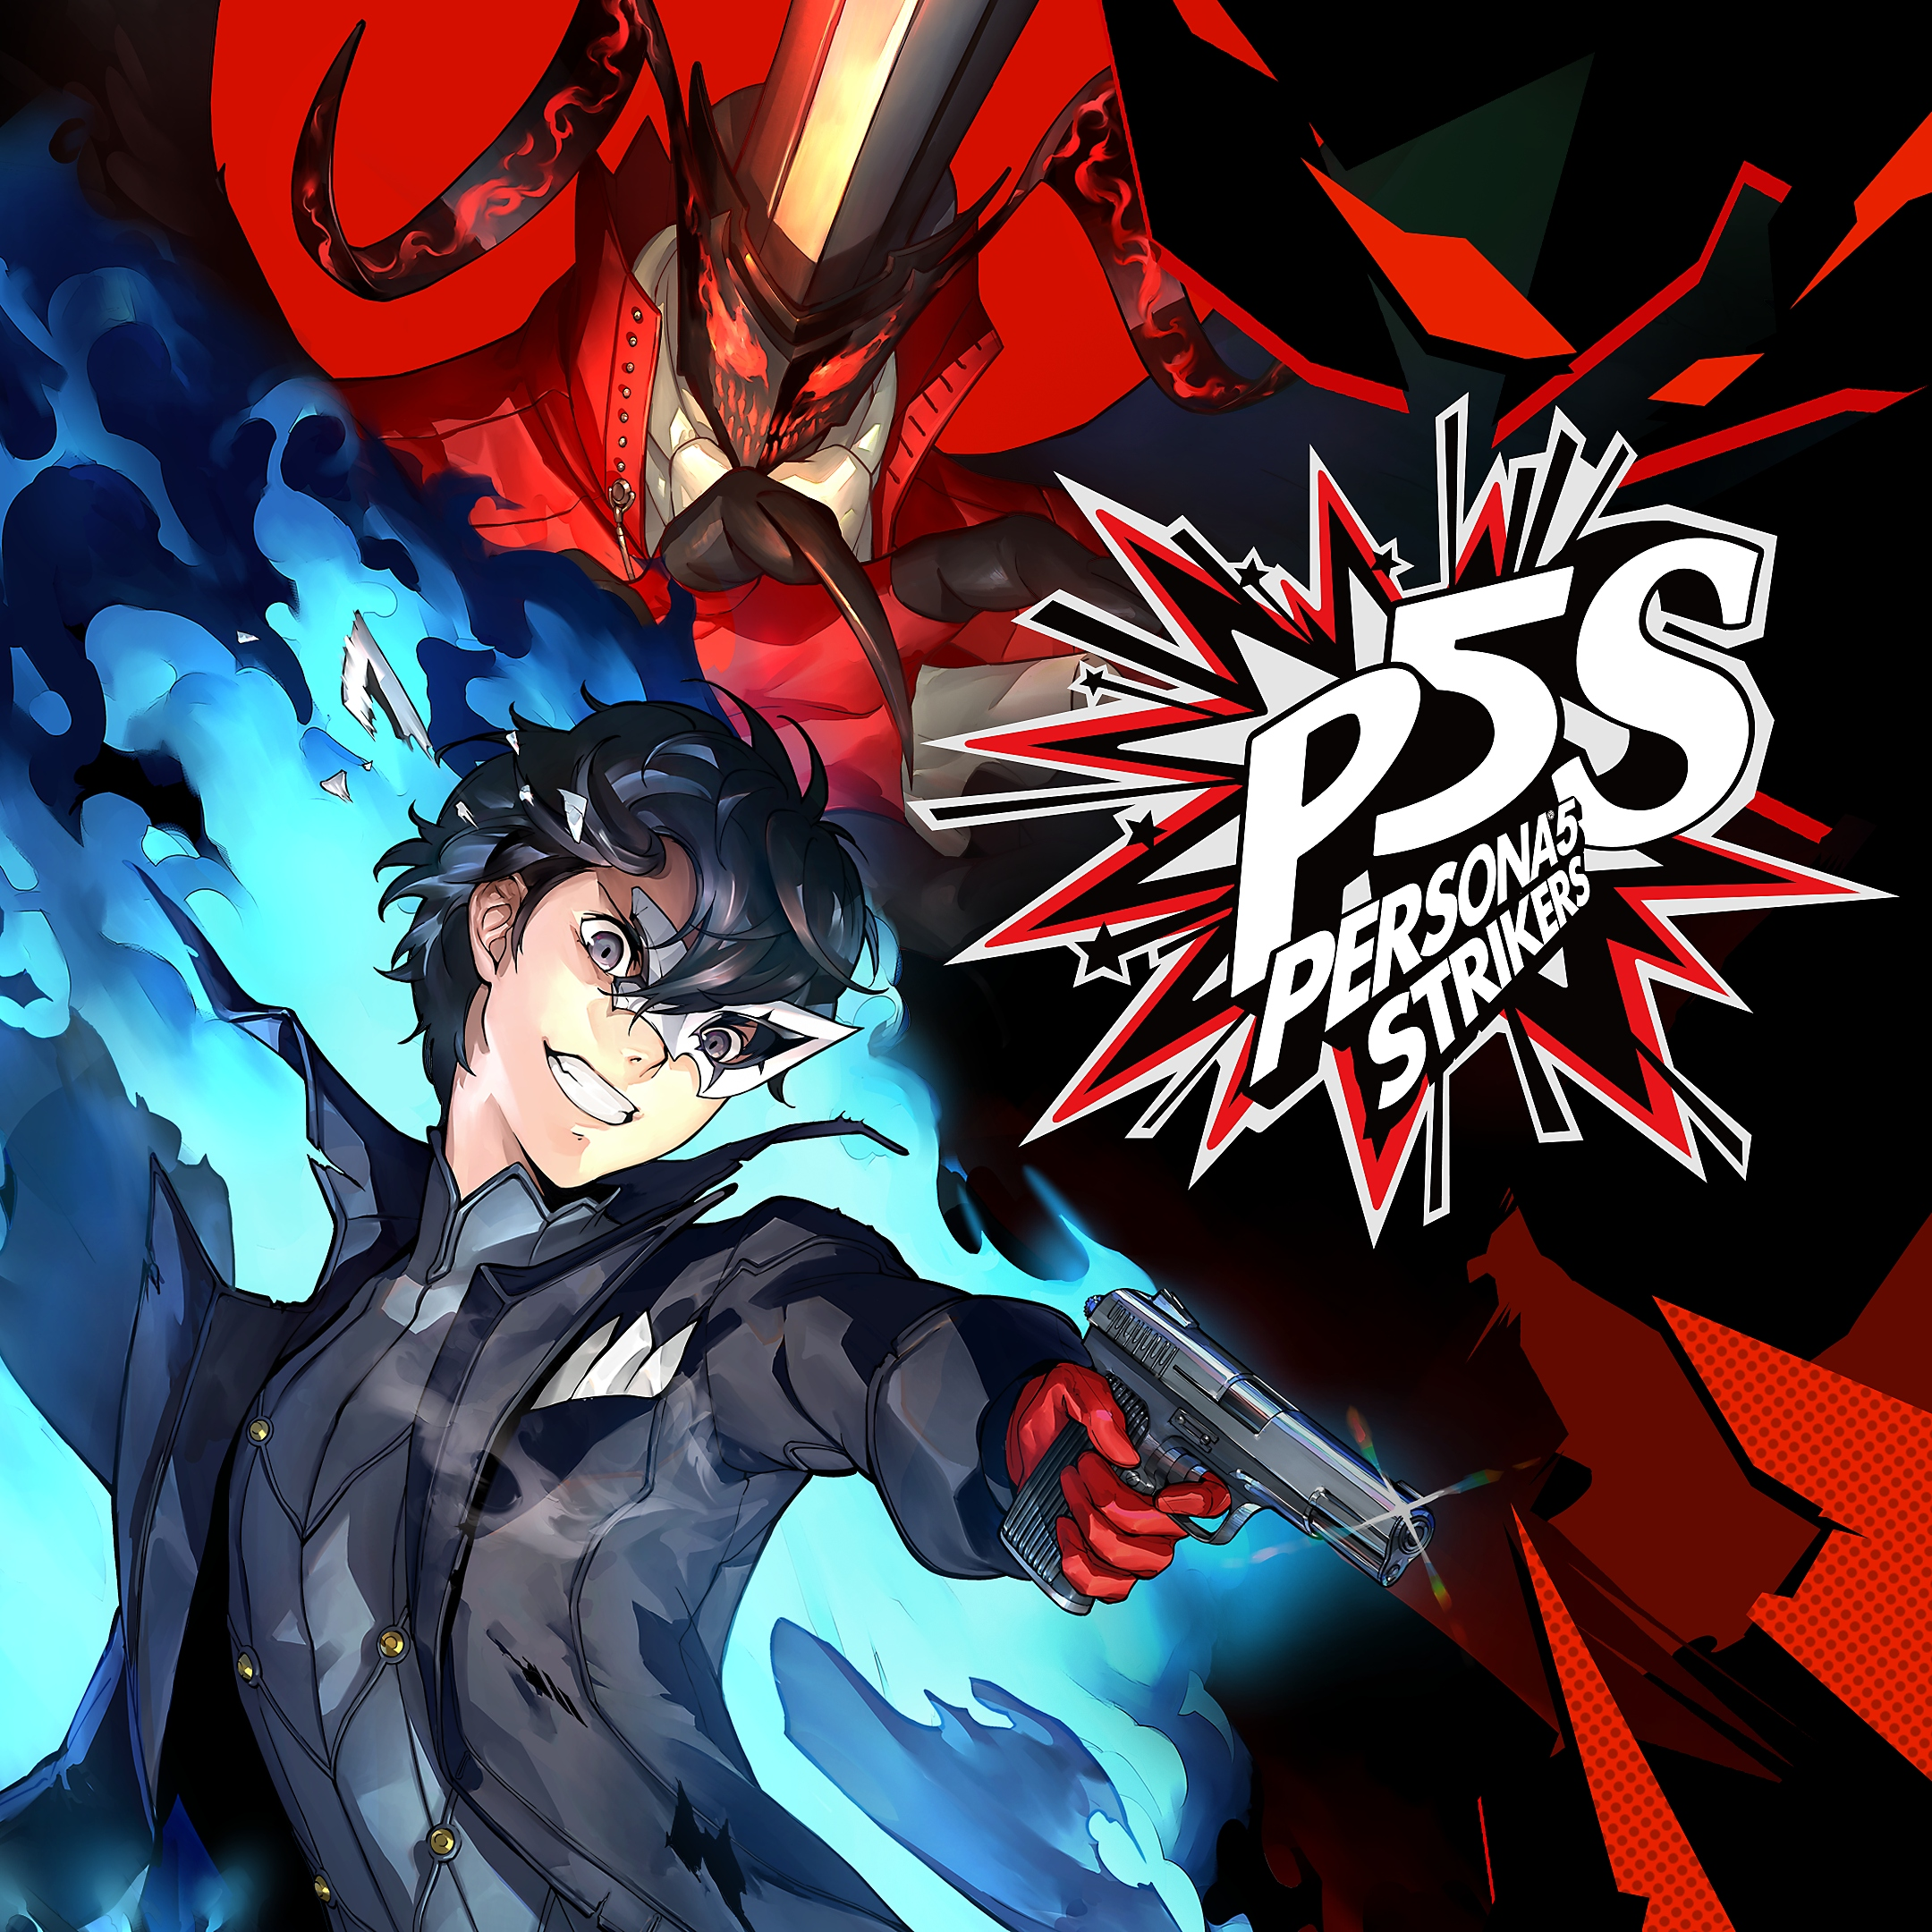 Persona® 5 Strikers